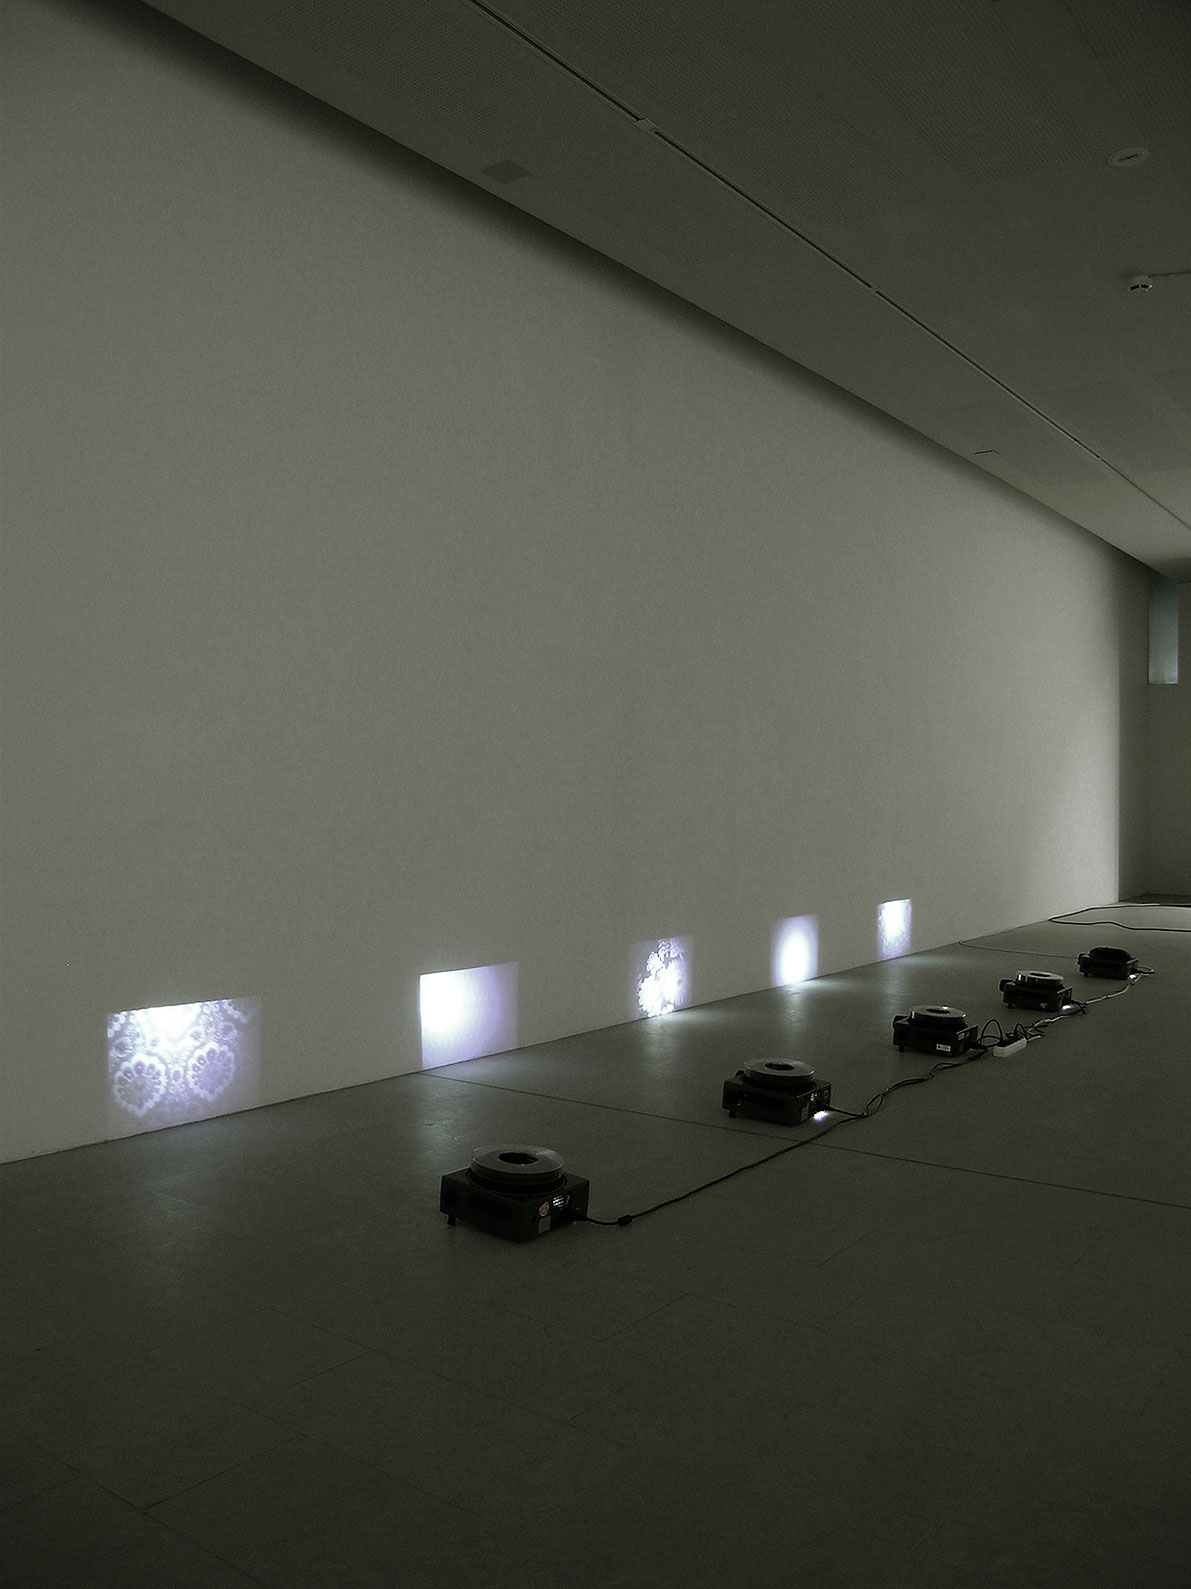 Visitor, 5 slide projections, size of each projection: 30 x 45 cm (during the exhibitions the lamps of the projectors burned away the pigment of the slides.)